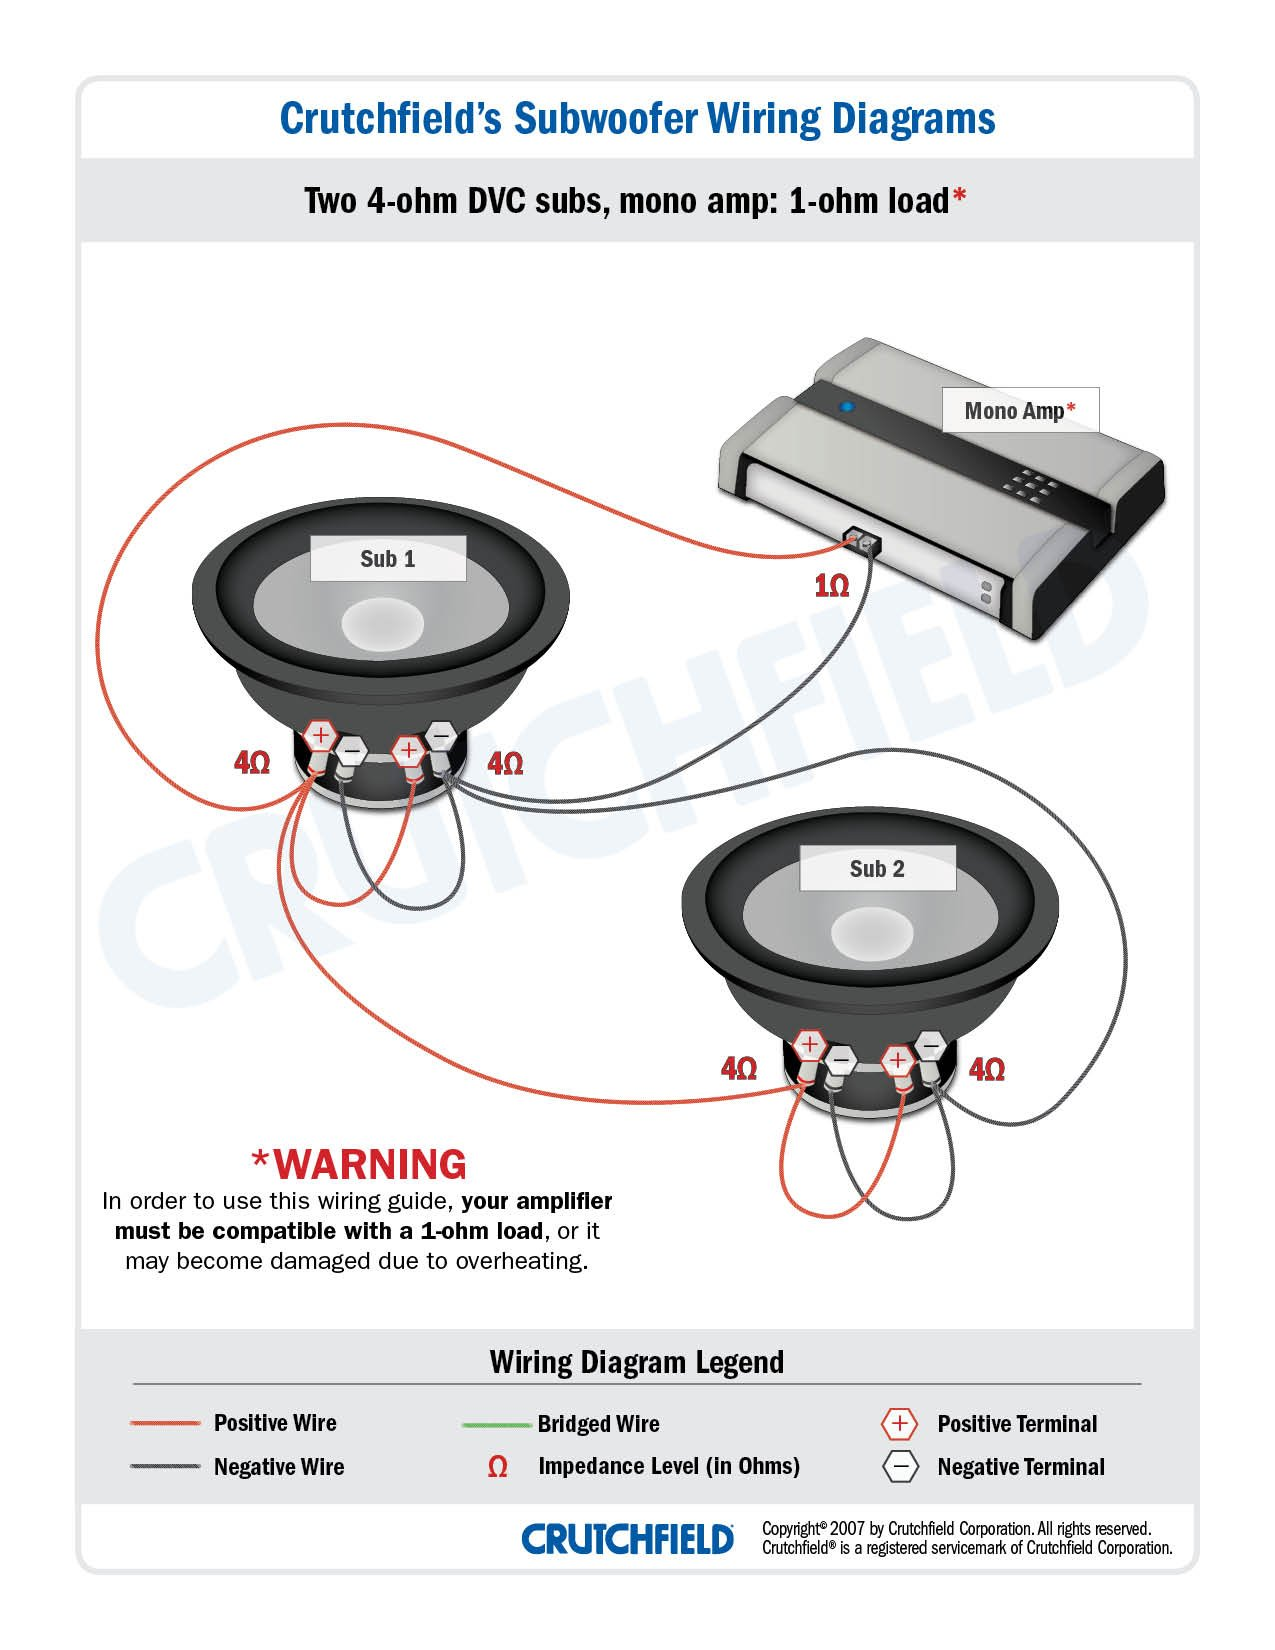 Wiring Subwoofers Whats All This About Ohms Razor 650 Electric Diagram Crutchfield Carries A Few That Qualify Including The Highly Rated Rockford Fosgate Power T1500 1bdcp Subwoofer Amplifier